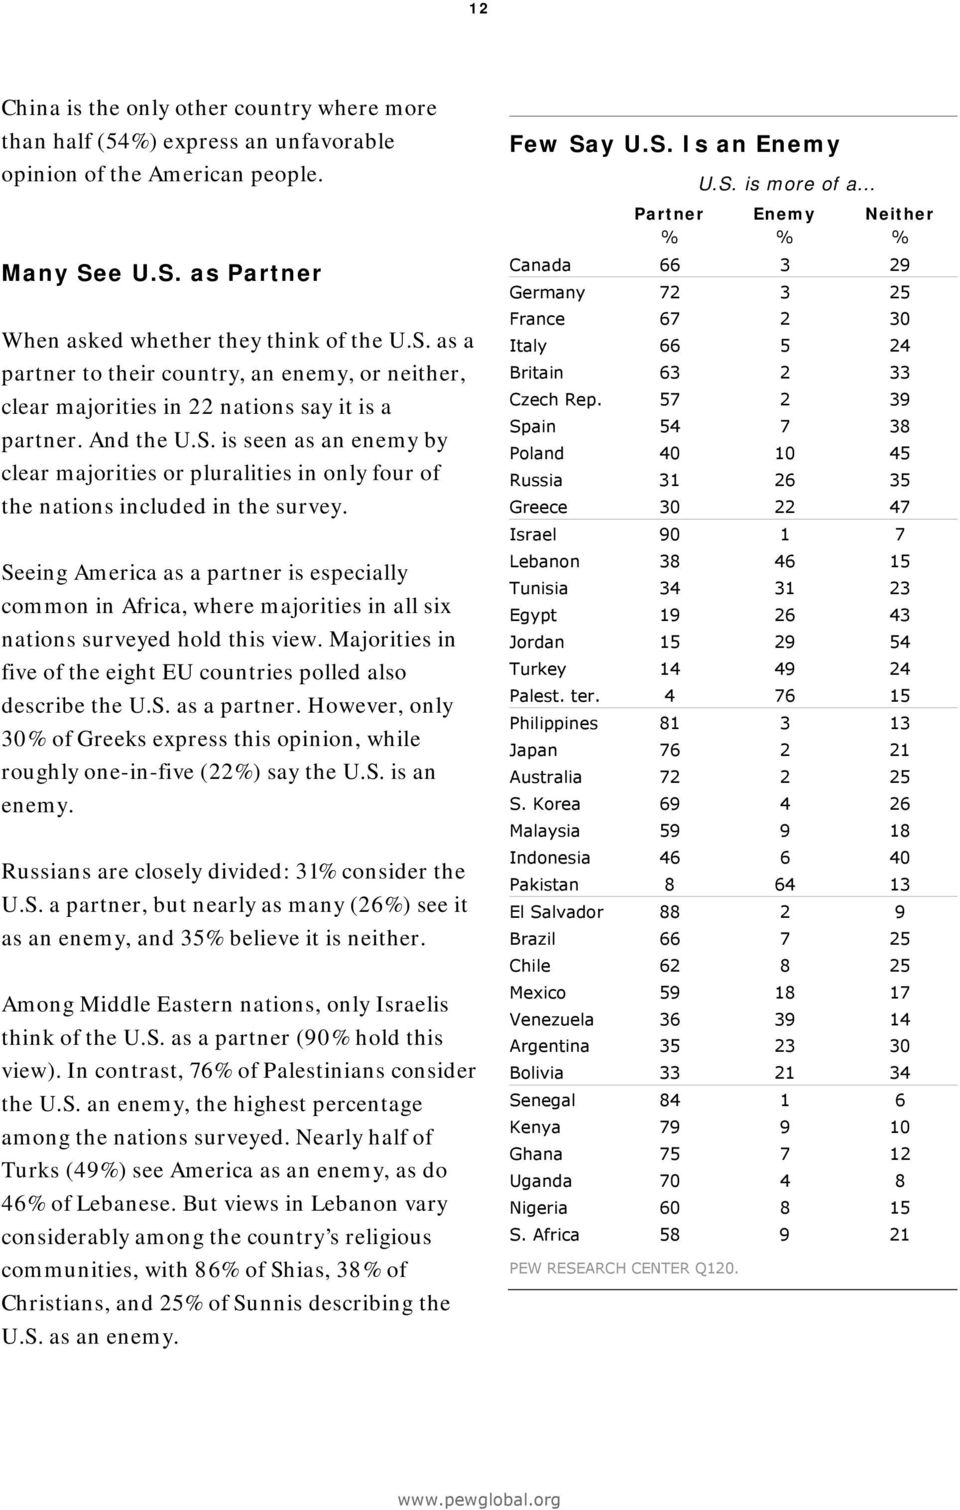 Seeing America as a partner is especially common in Africa, where majorities in all six nations surveyed hold this view. Majorities in five of the eight EU countries polled also describe the U.S. as a partner. However, only % of Greeks express this opinion, while roughly one-in-five (%) say the U.